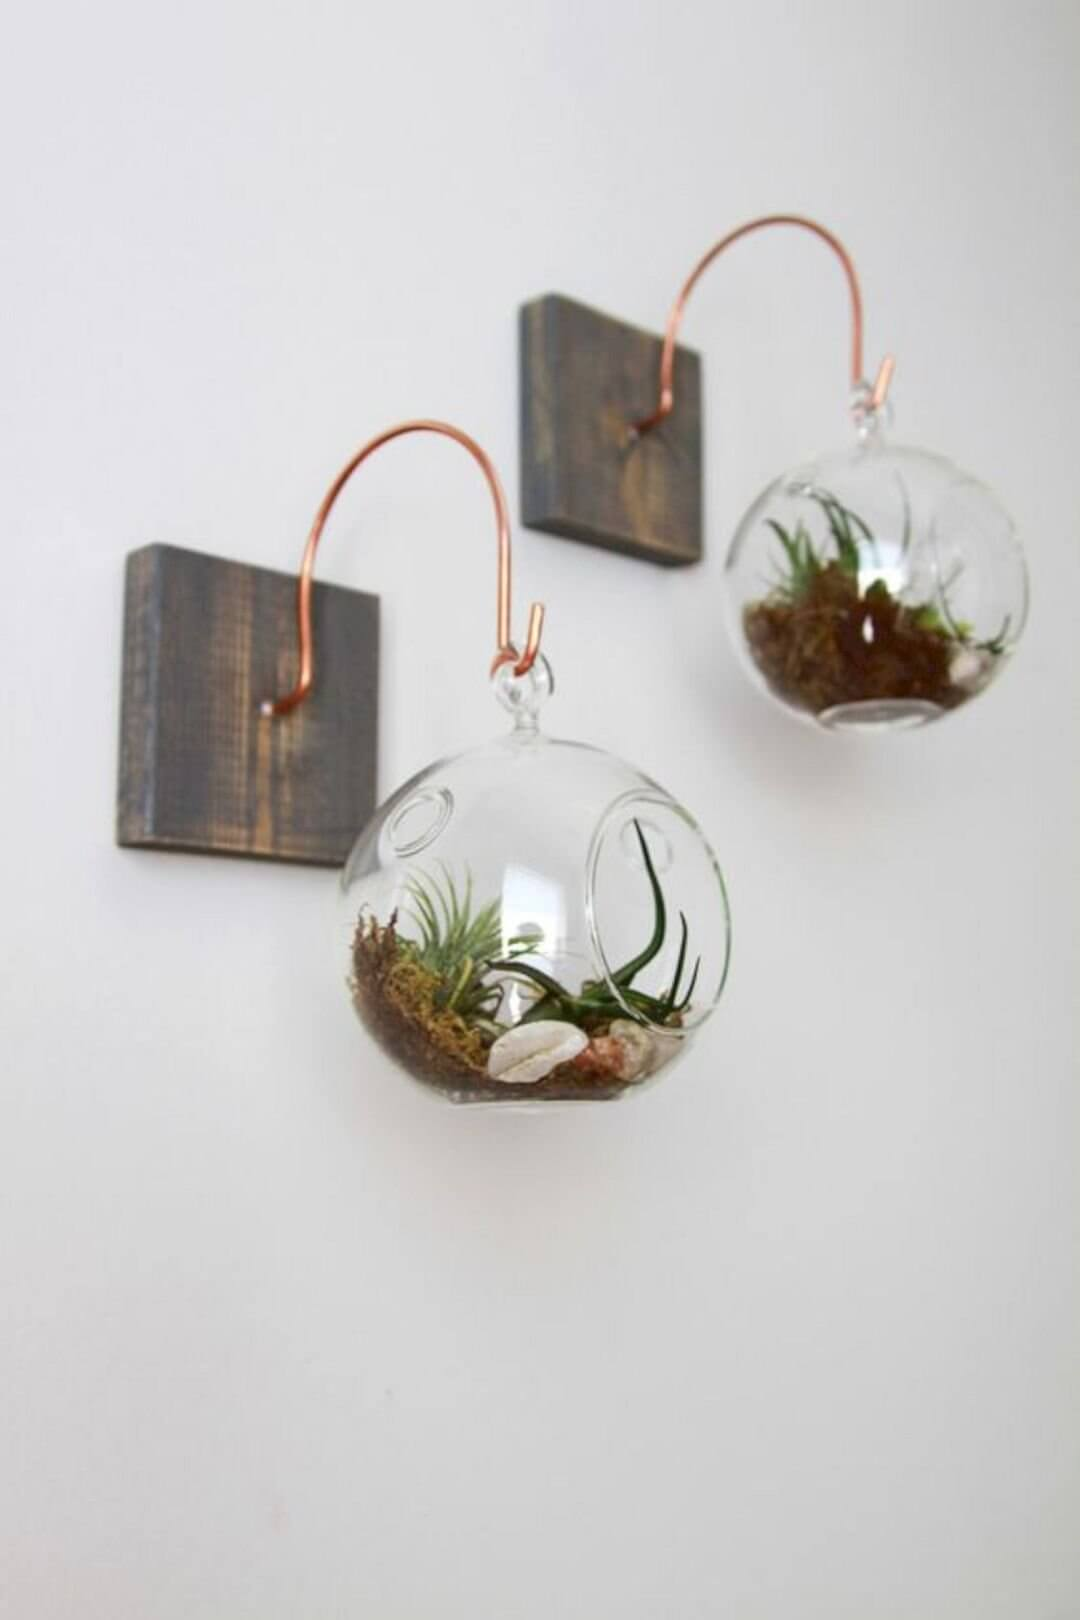 Wall Hanging Globes with Air Plants